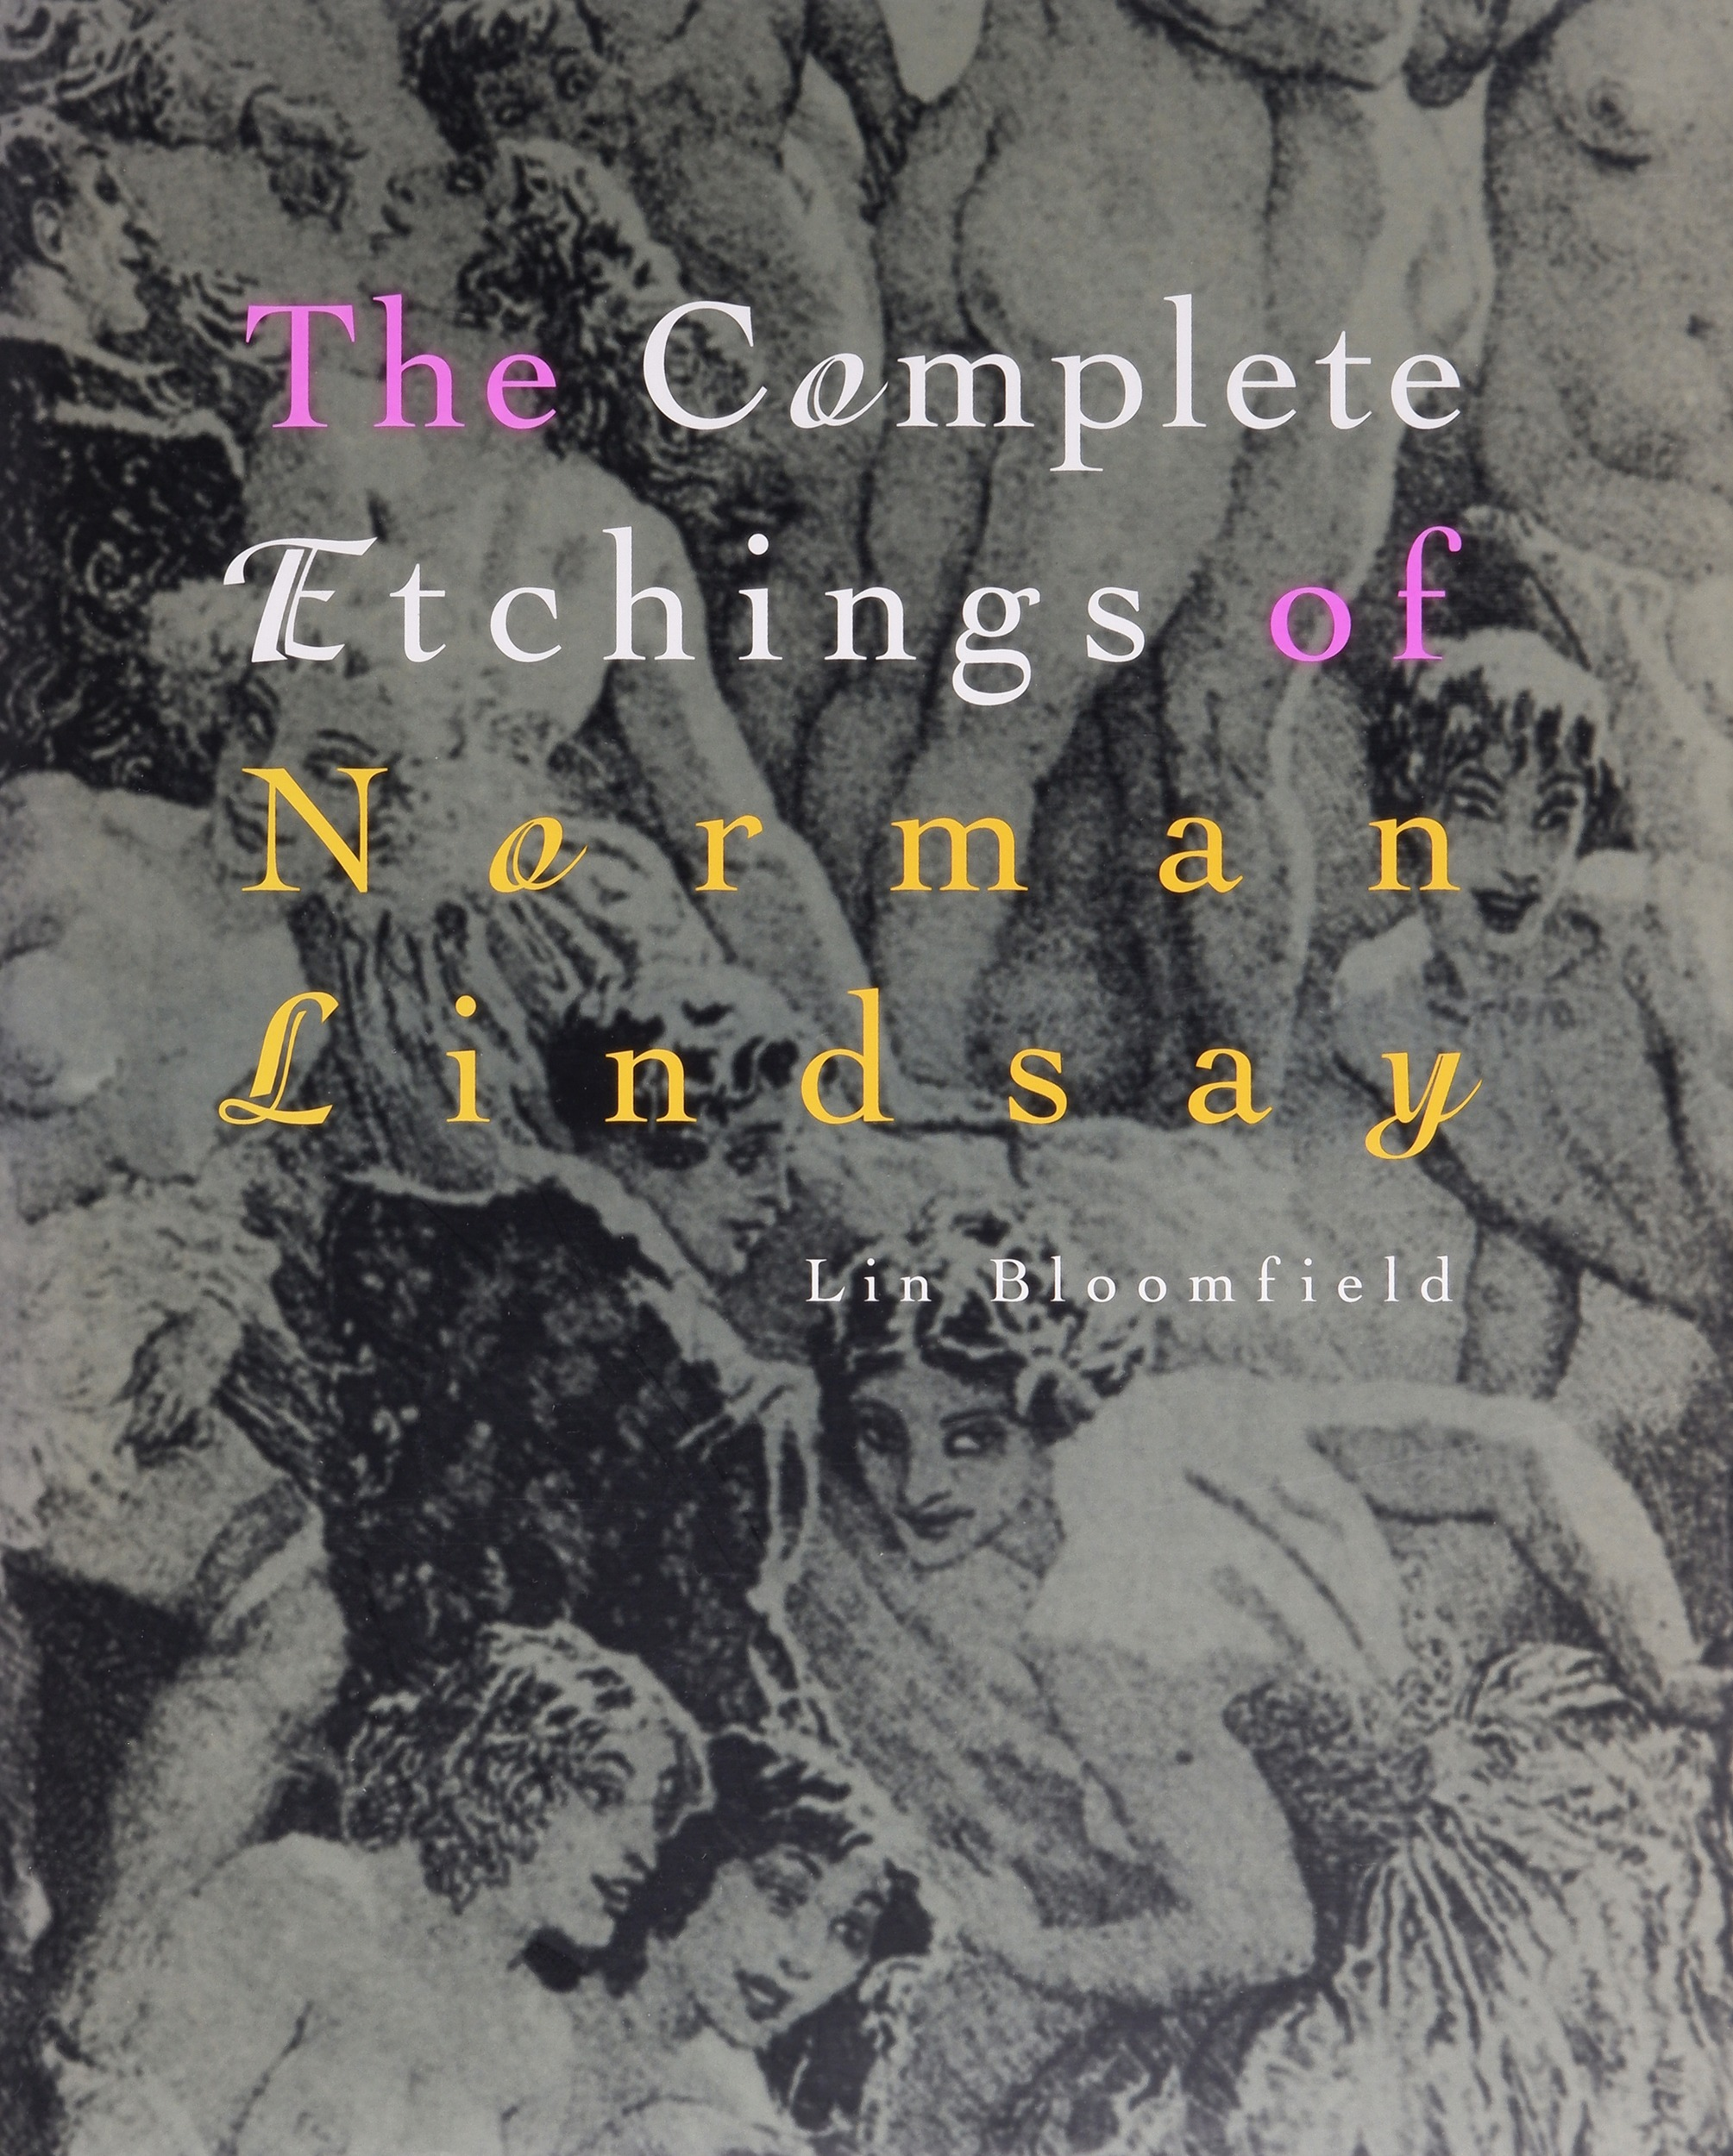 'Bloomfield, L., The Complete Etchings of Norman Lindsay, Odana Editions 1998'